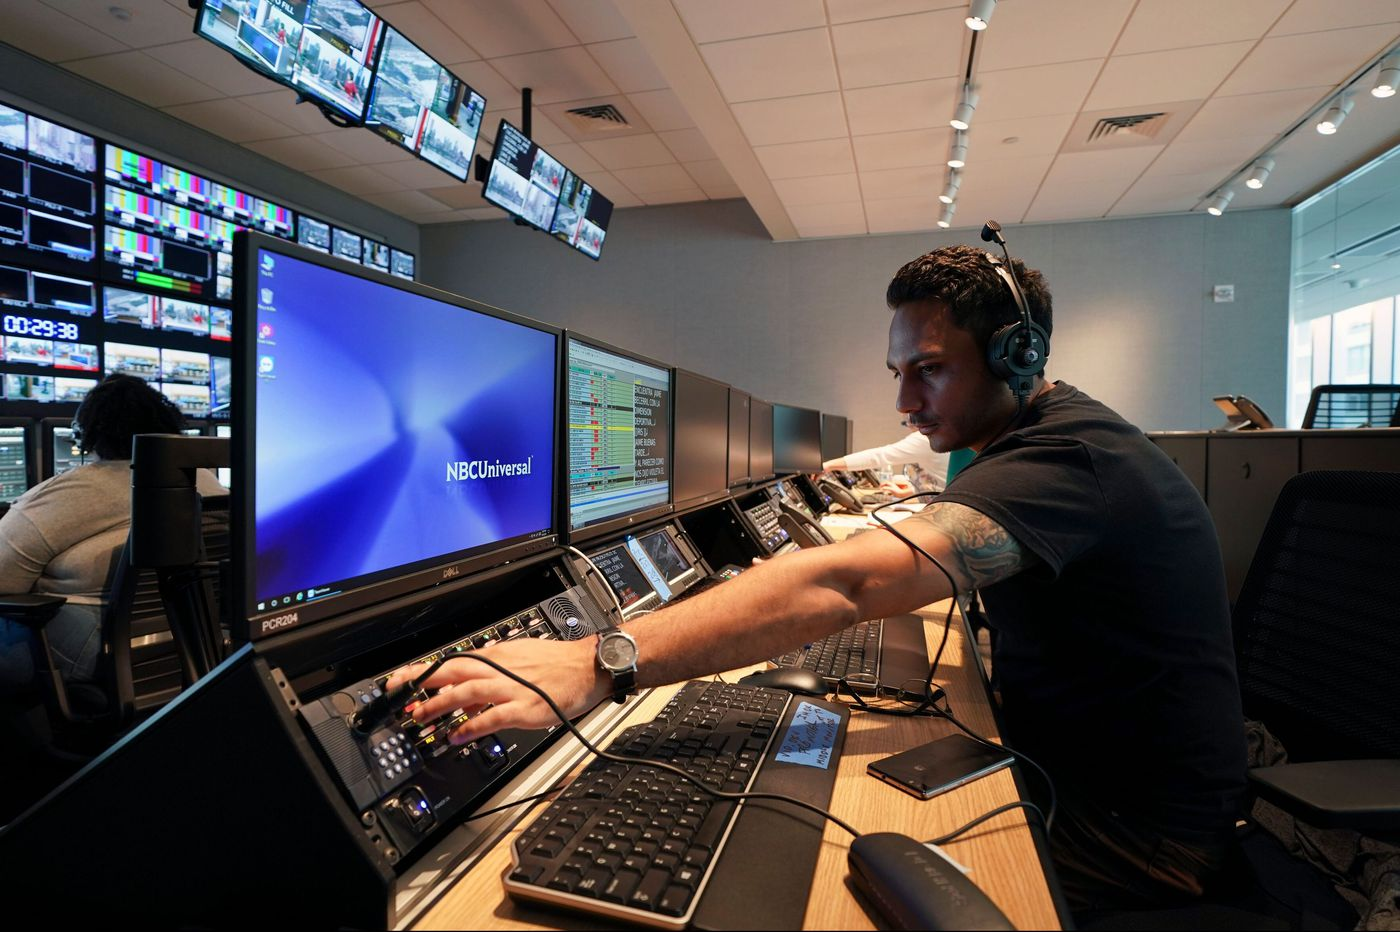 In Bala Cynwyd since '52, WCAU in final stages of downtown move to new Comcast Center